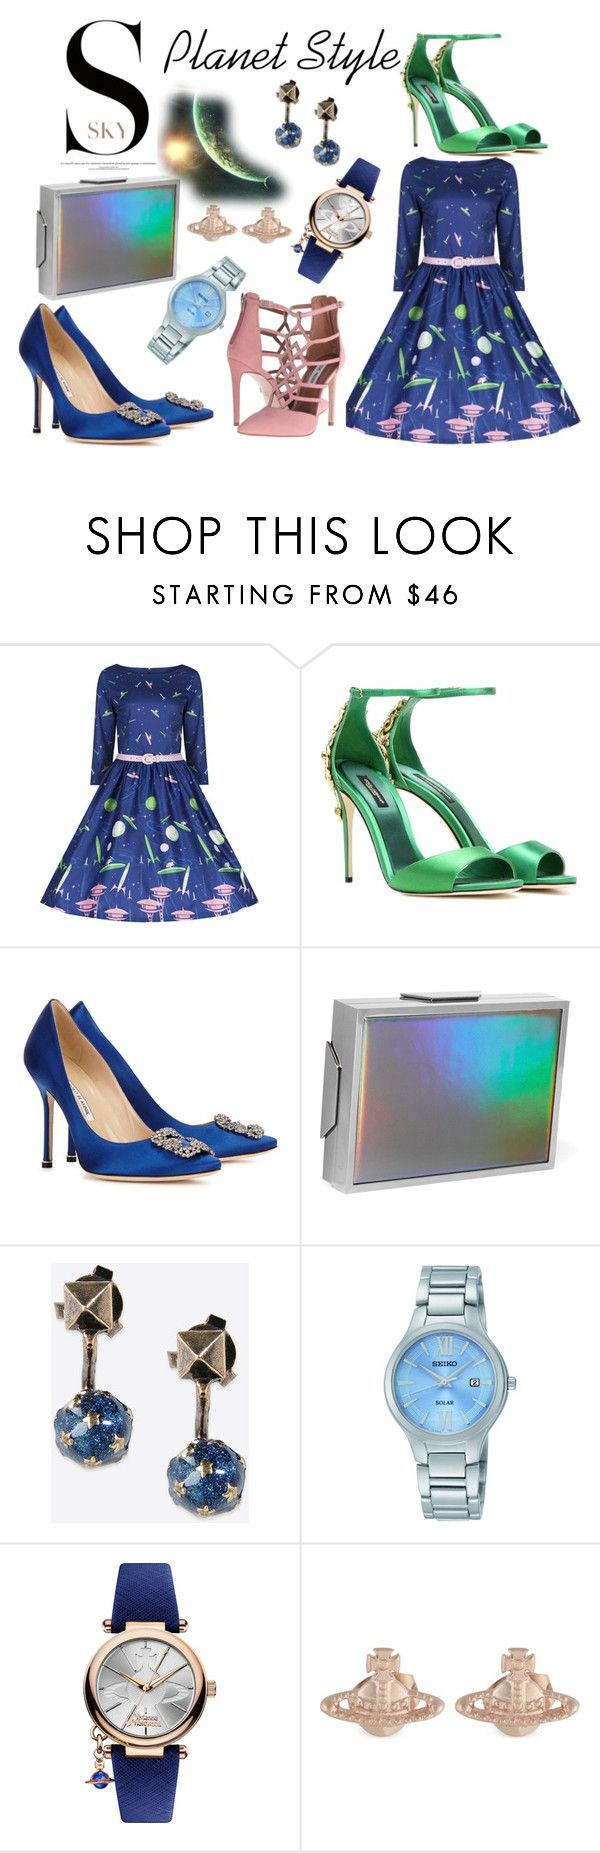 Planet Style by boutiquebrowser on Polyvore featuring Steve Madden, Manolo Blahnik, Dolce&Gabbana, Lee Savage, Vivienne Westwood, Seiko and Valentino